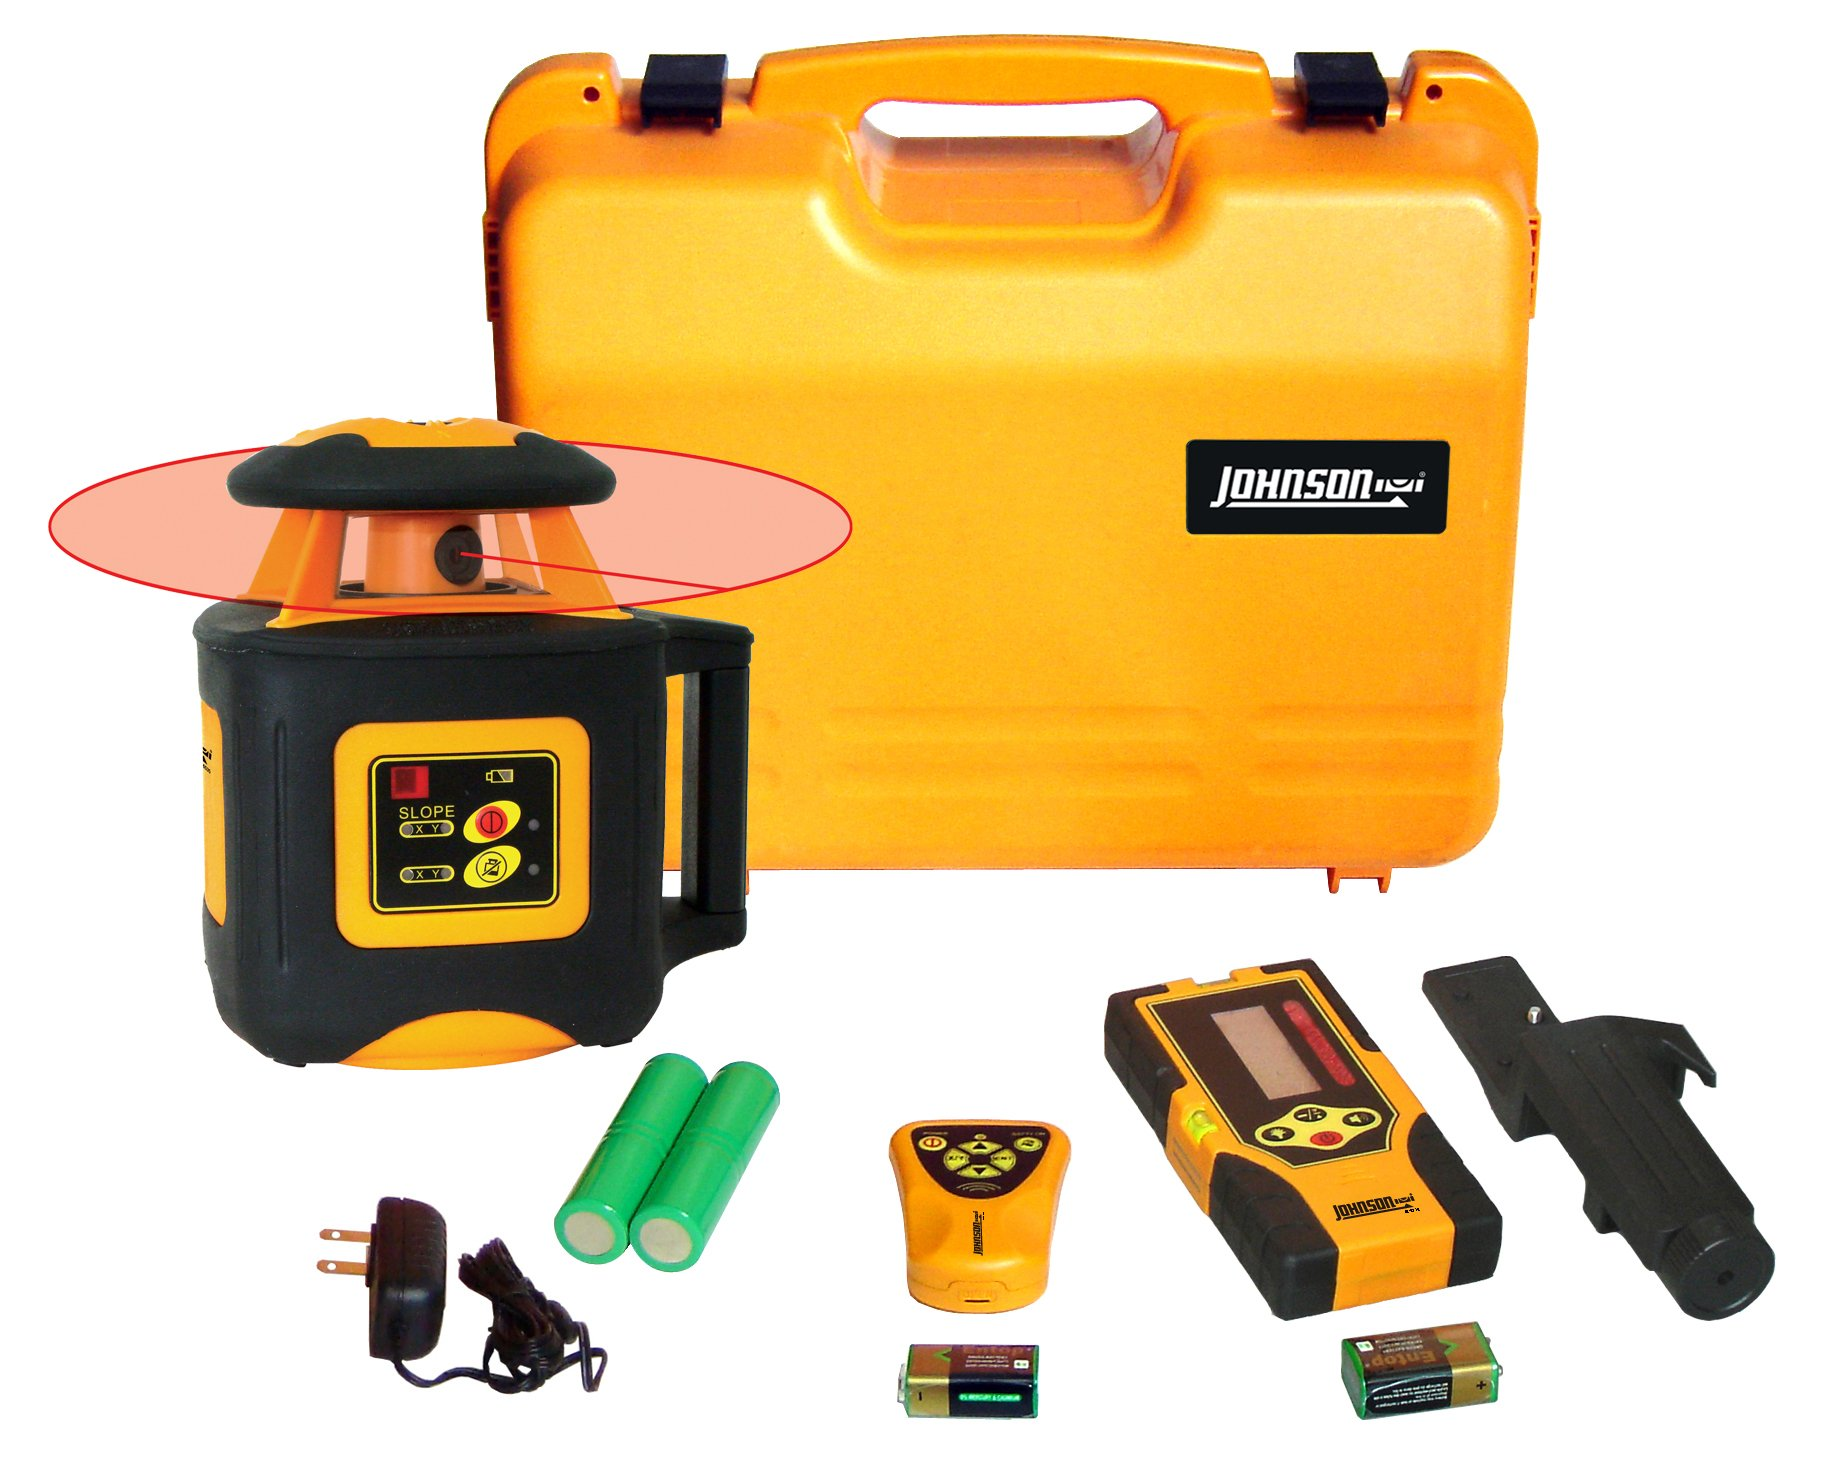 Johnson Level & Tool 40-6535 Electronic Self-Leveling Horizontal Rotary Laser Level with Dual Slope Feature by Johnson Level & Tool